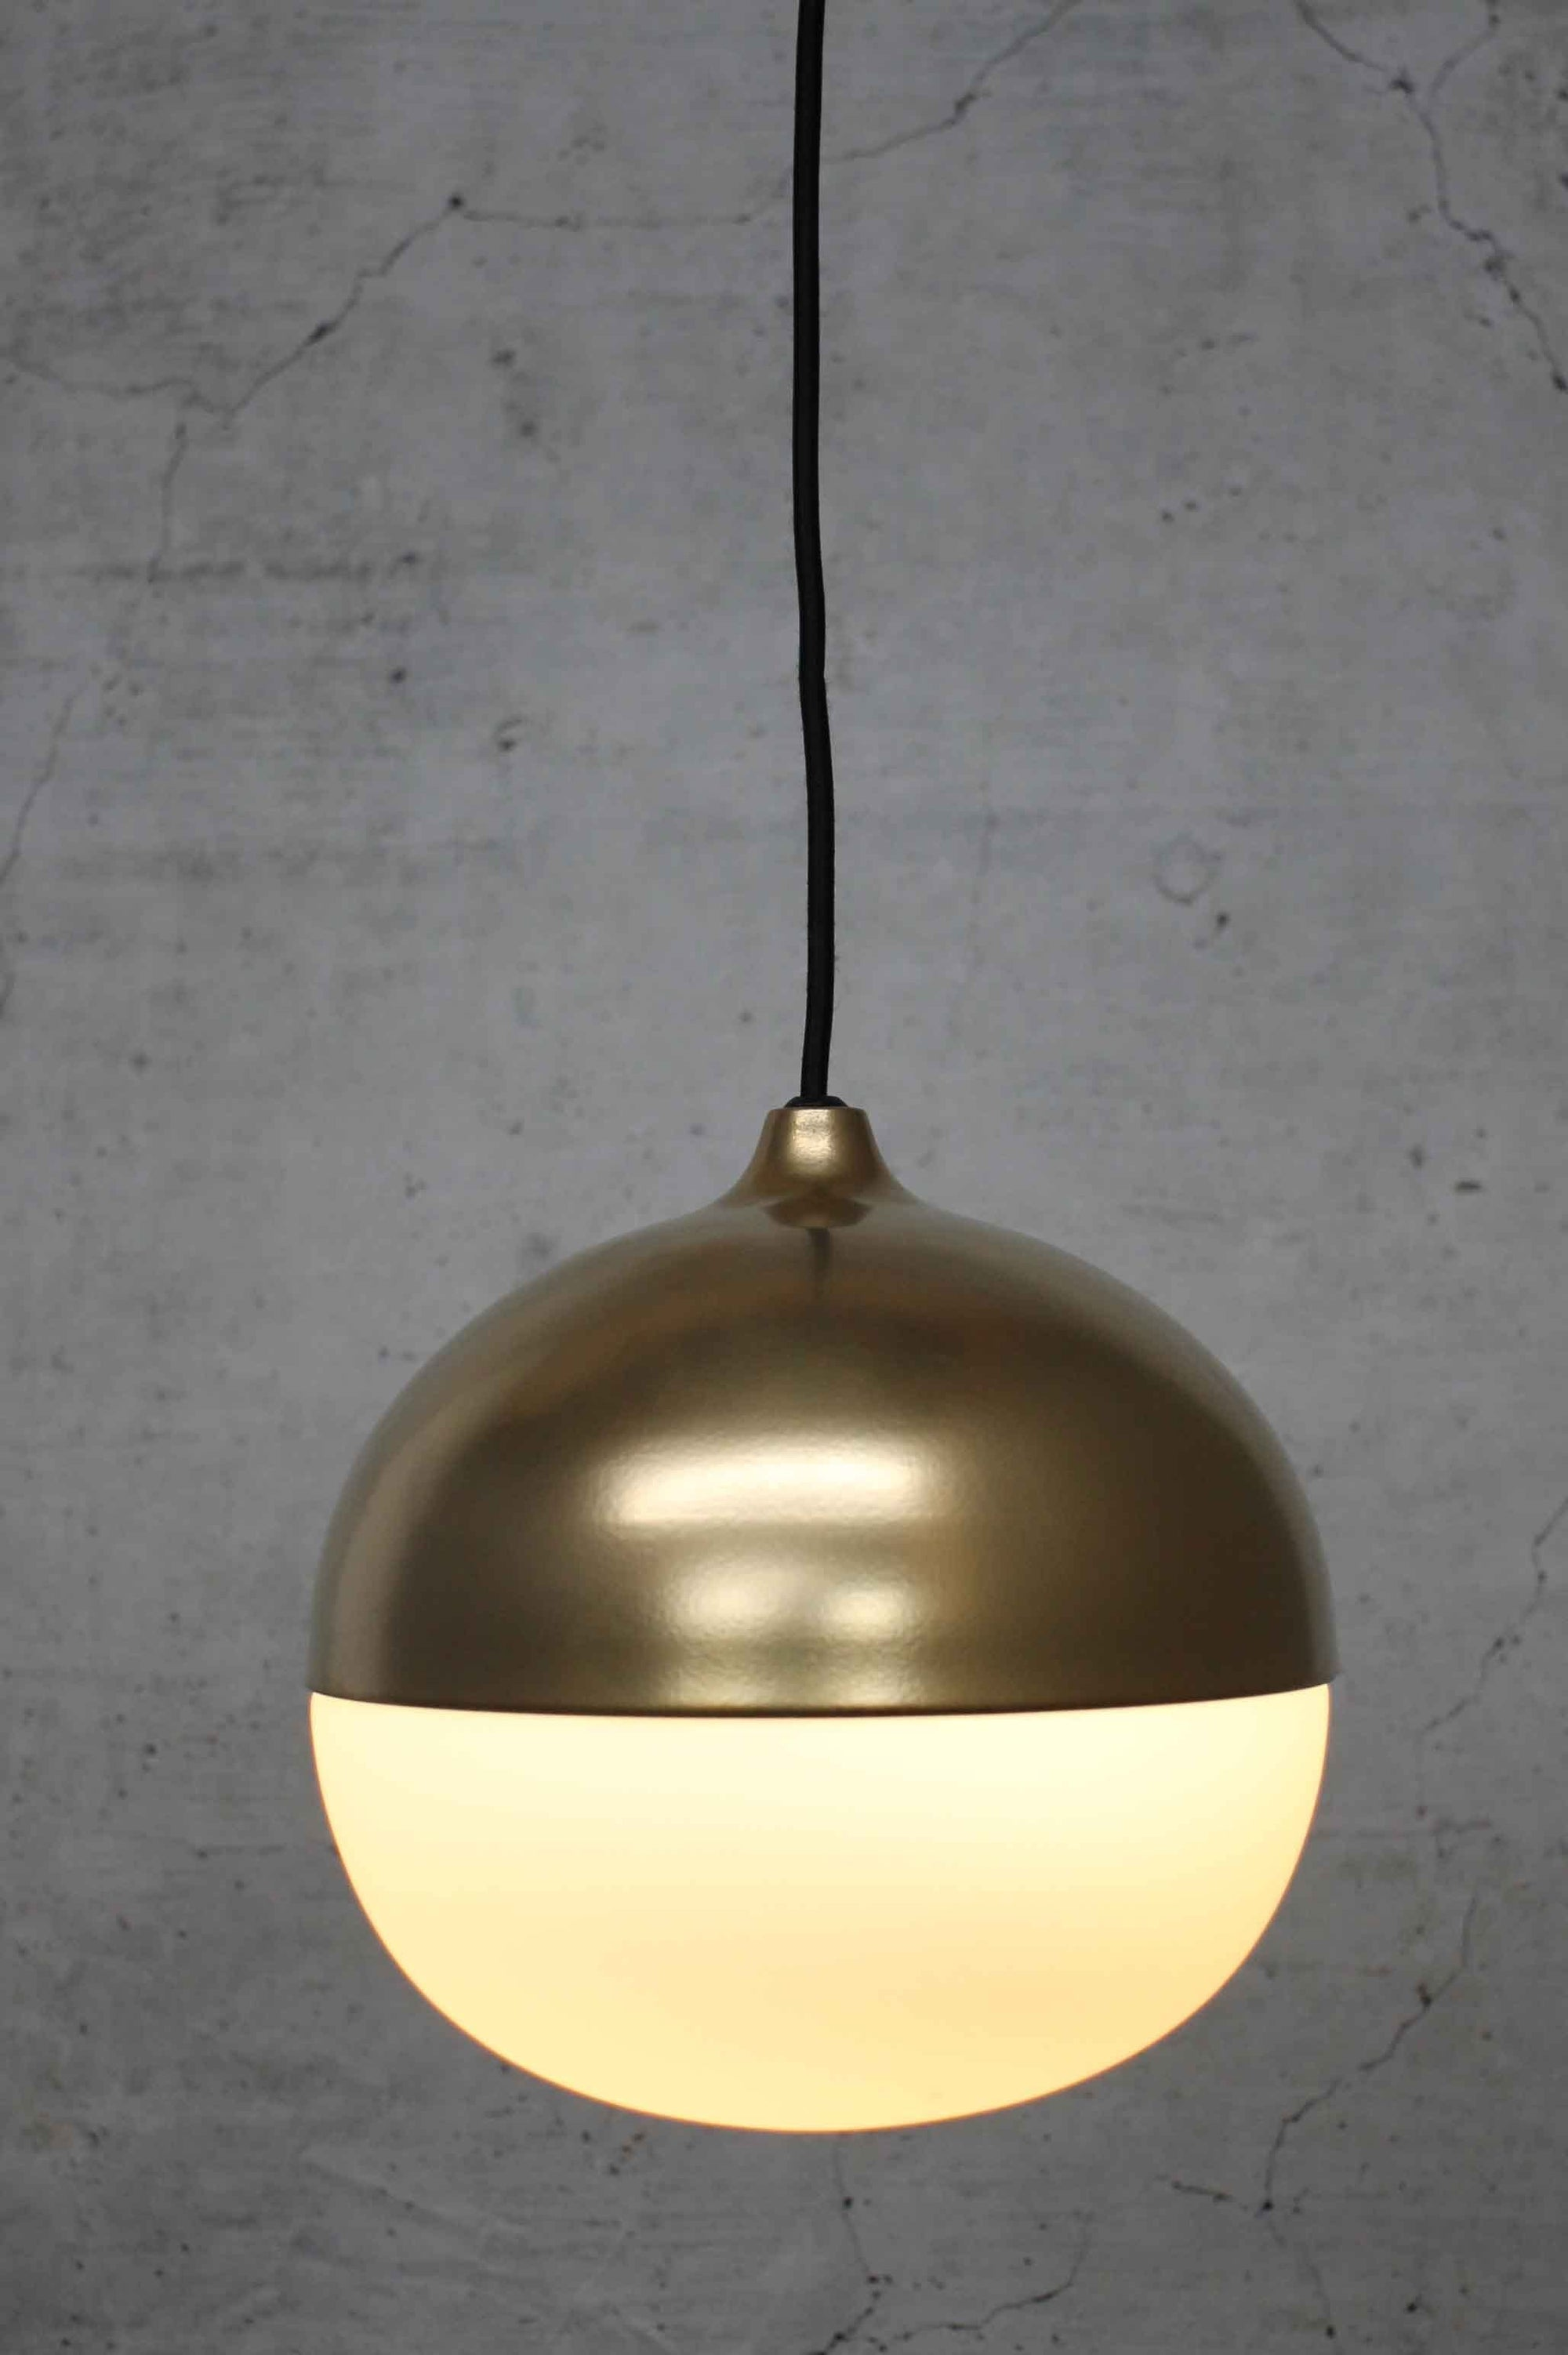 steel-pendant-light-with-gold-finish